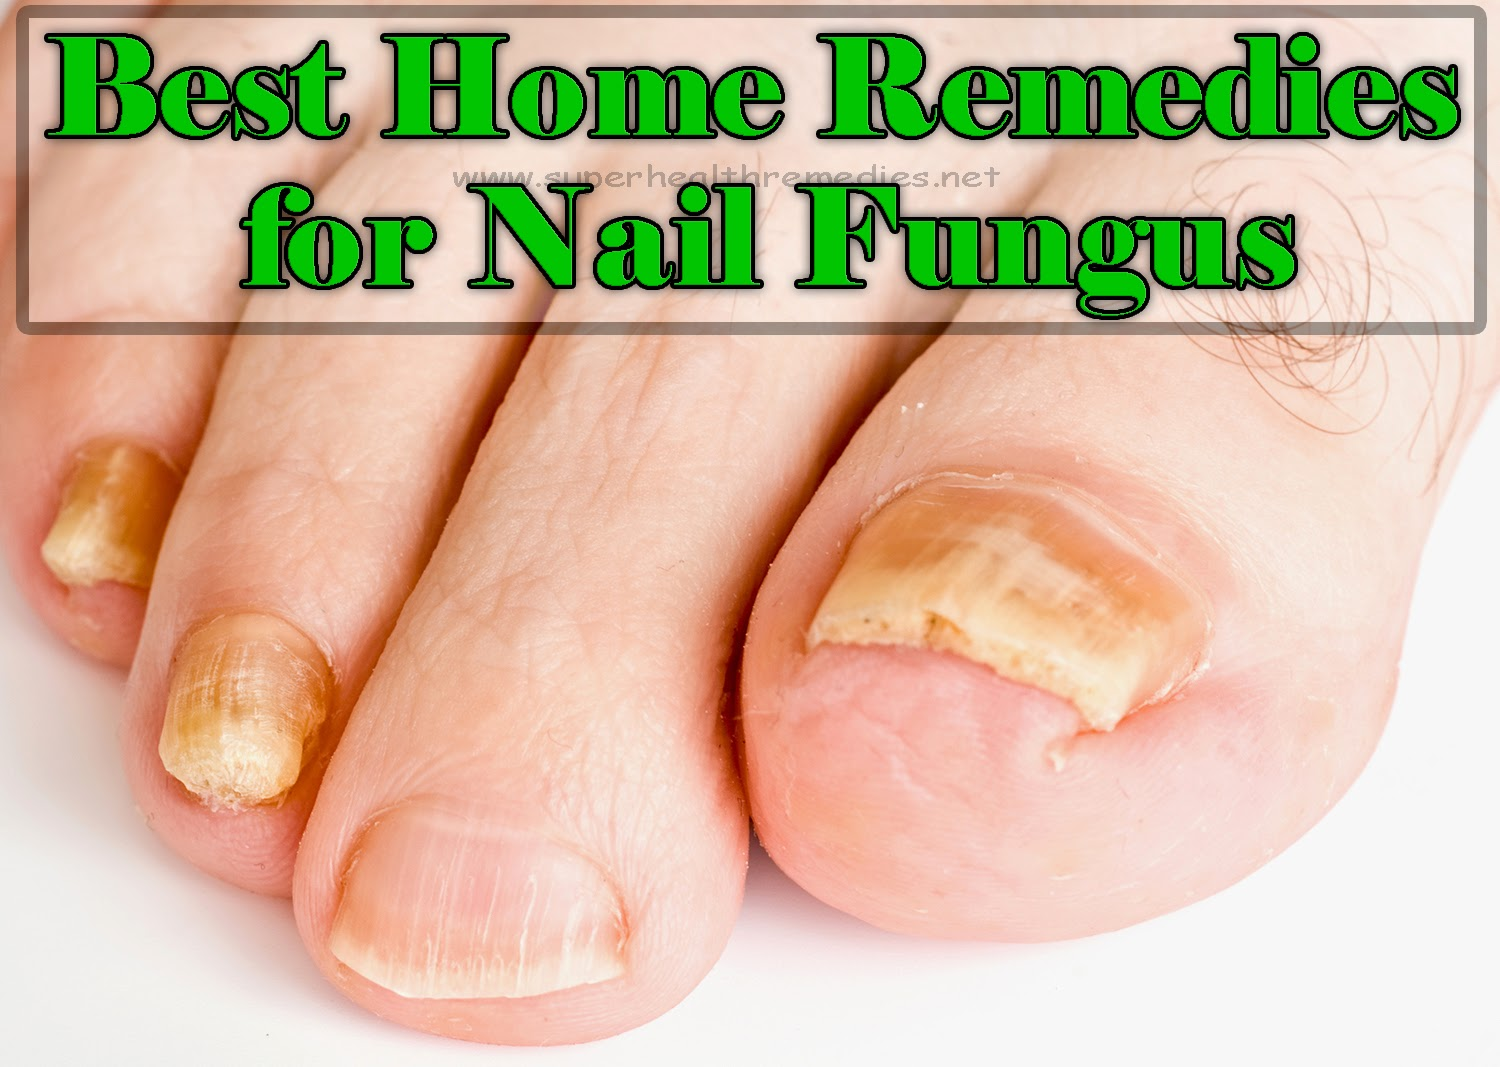 Best Home Remedies for Nail Fungus   Super Health Remedies